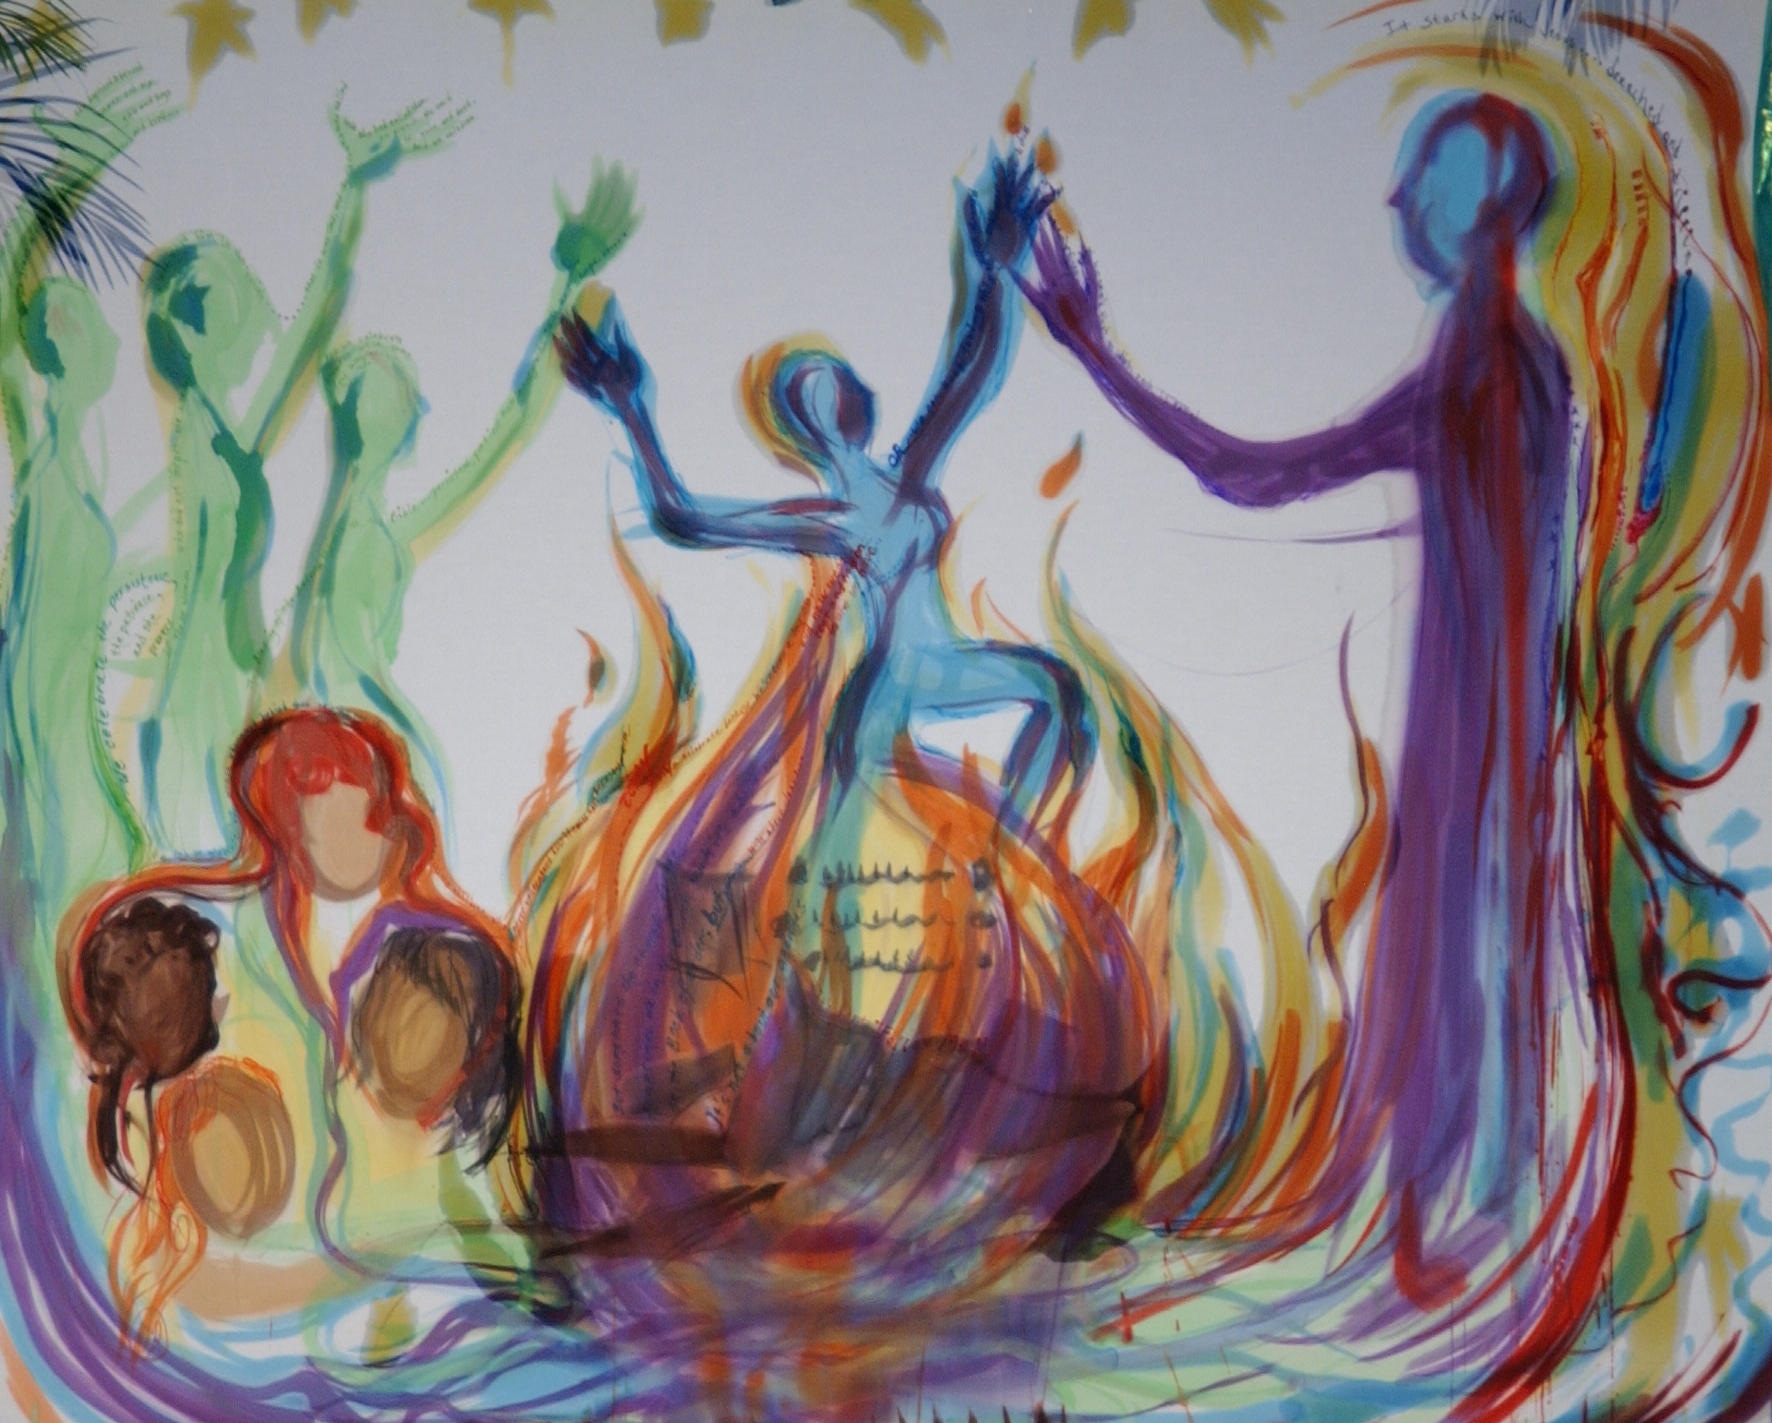 painting depicting dancers around or in a flame